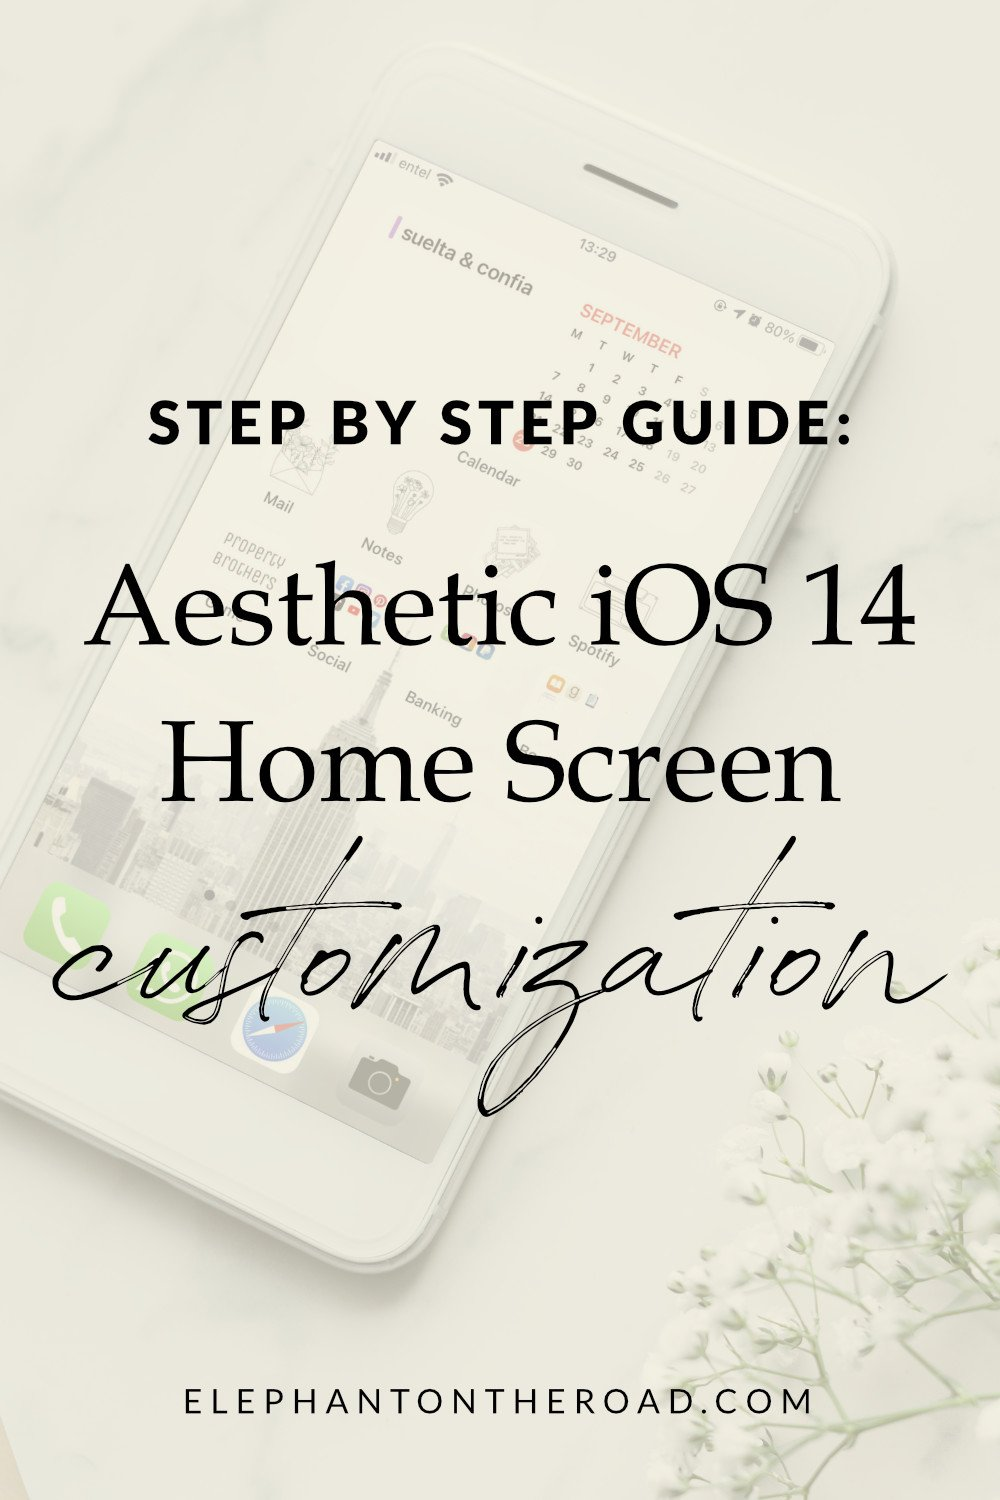 Aesthetic iOS 14 Home Screen Customization. Aesthetic iOS 14 Home Screen Tutorial. iOS 14 Home Screen Widgets. iOS 14 Home Screen Layout Ideas. iOS 14 Home Screen Edit Apps. iOS 14 Home Screen Styles. iOS 14 Home Screen Cute Ideas. iOS Home Screen Setup. Elephant on the Road.